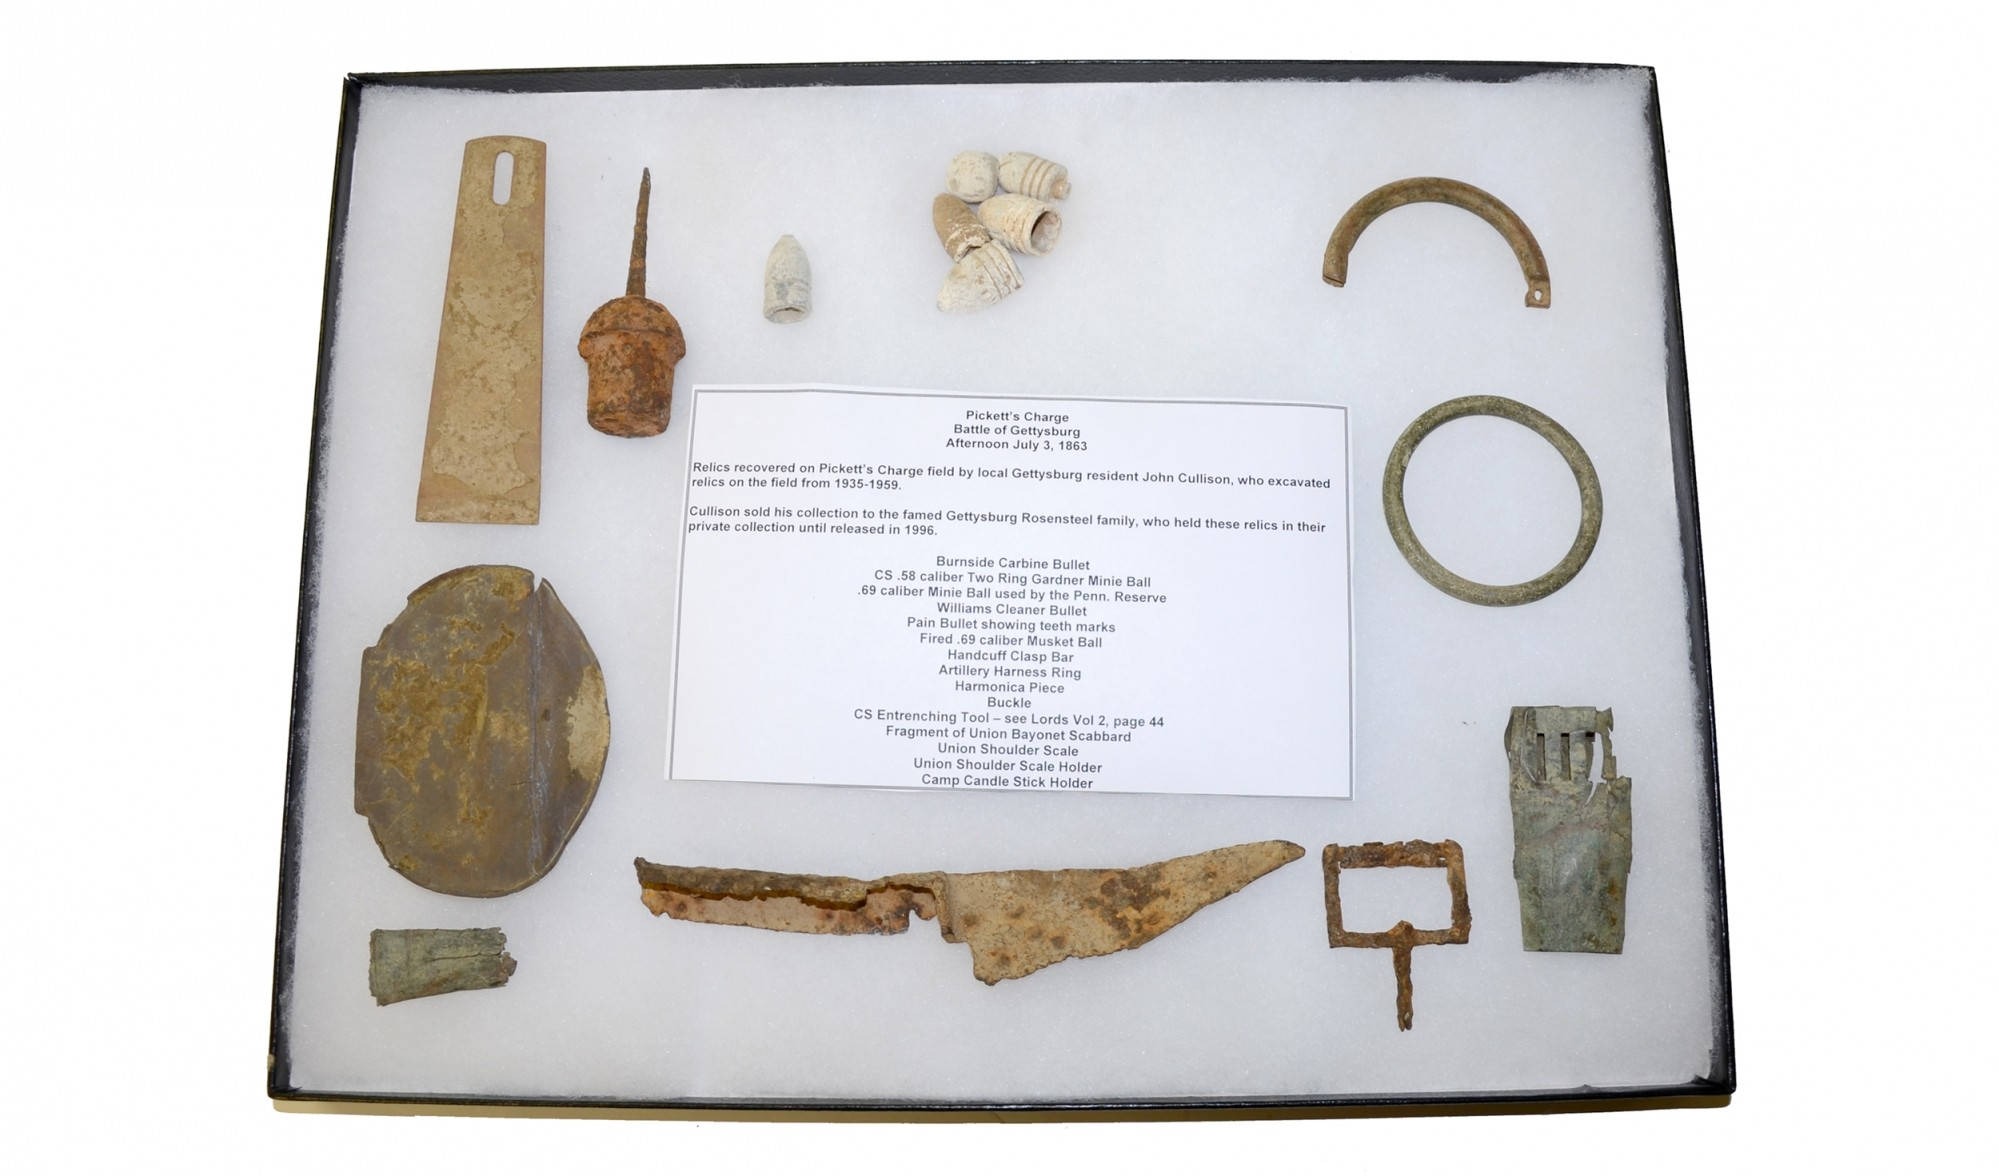 RELICS RECOVERED FROM PICKETT'S CHARGE BY JOHN CULLISON